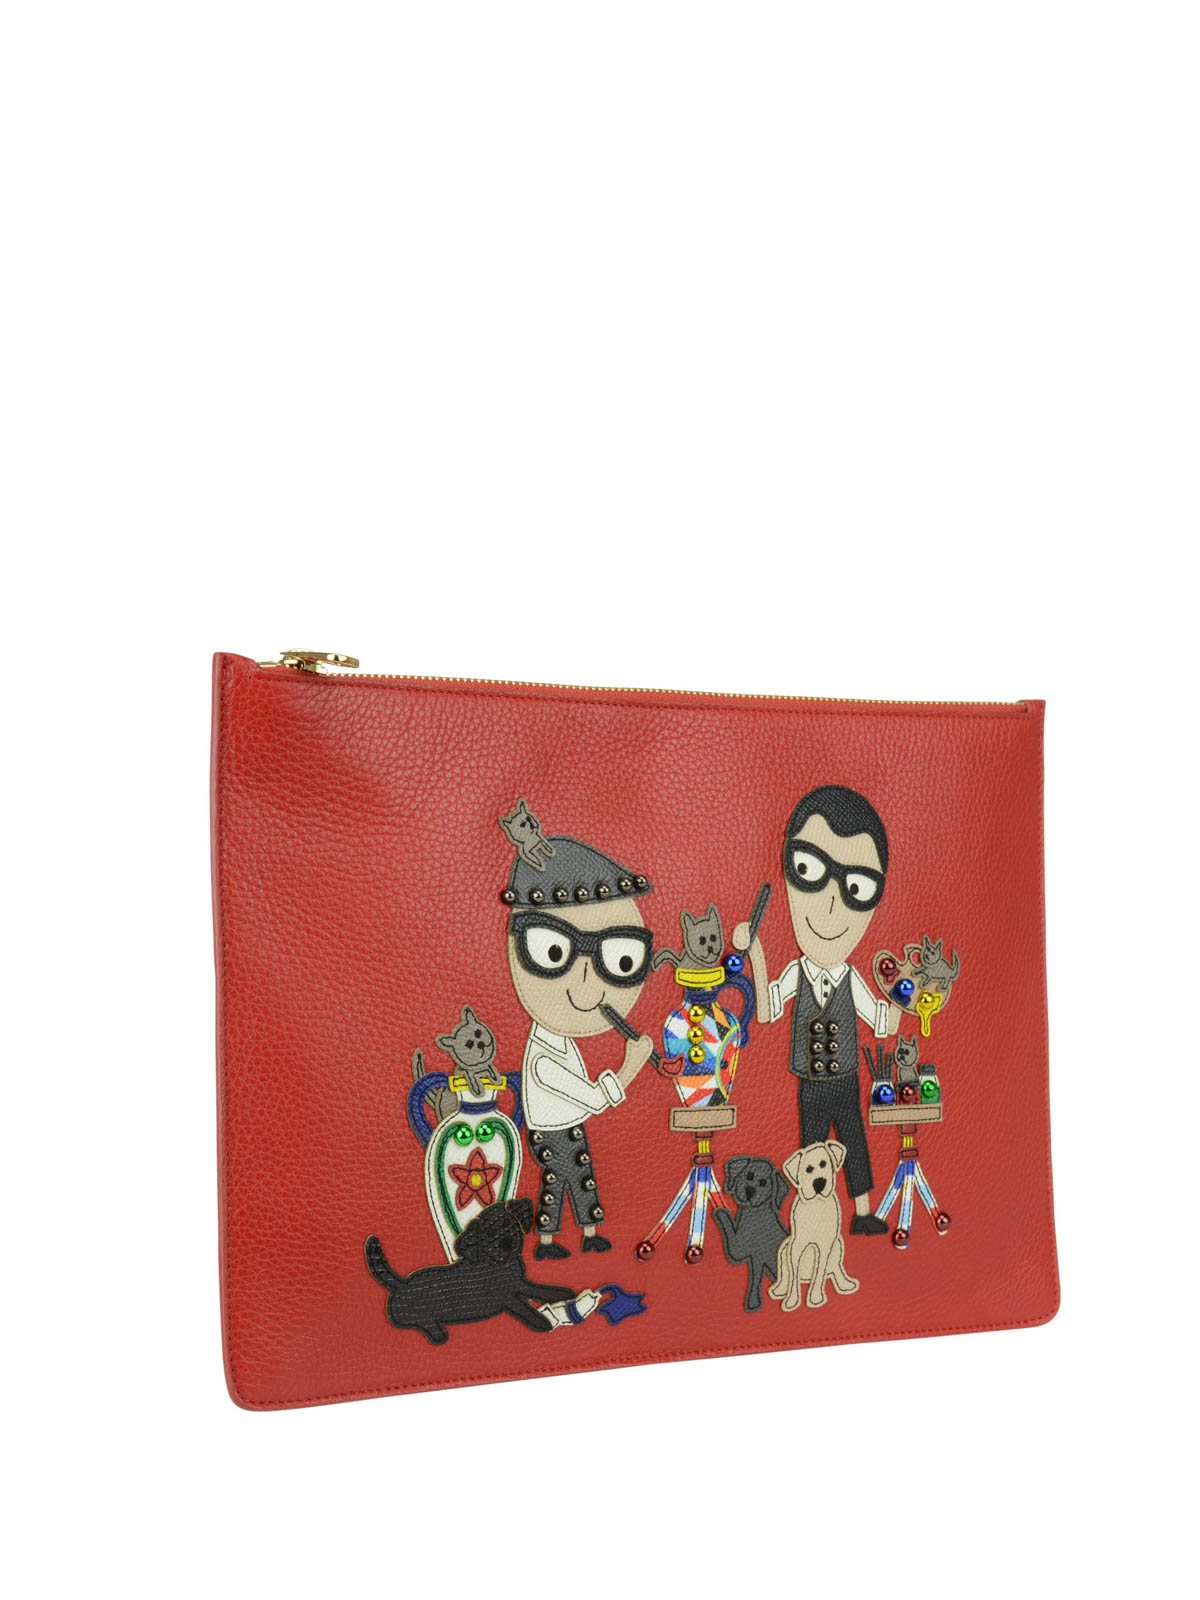 07c7666bd7 DOLCE   GABBANA  clutches online - DG Family patch leather clutch